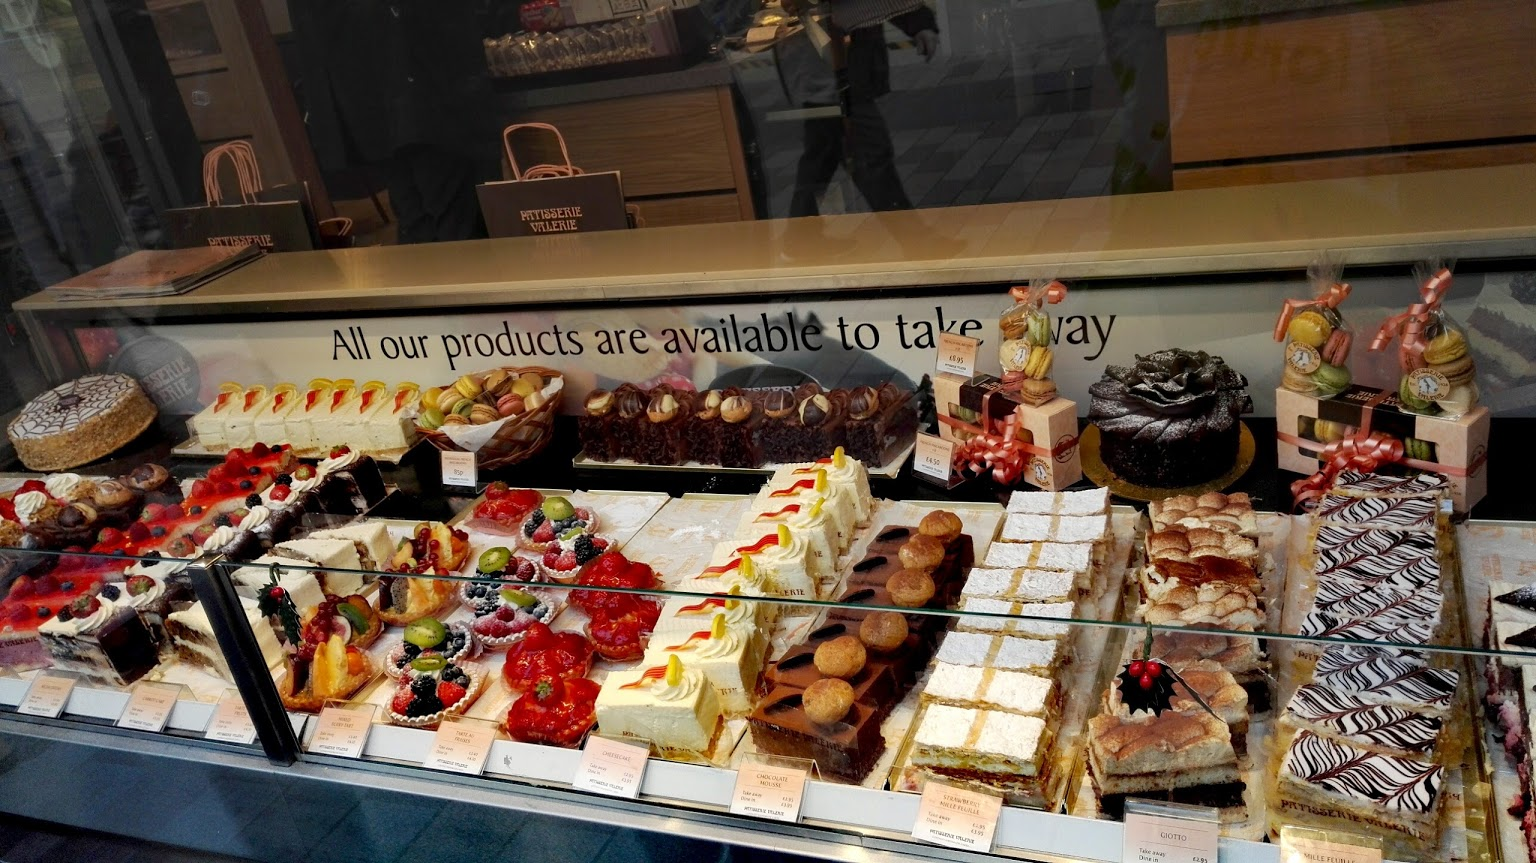 Patisserie Valerie Window Bed